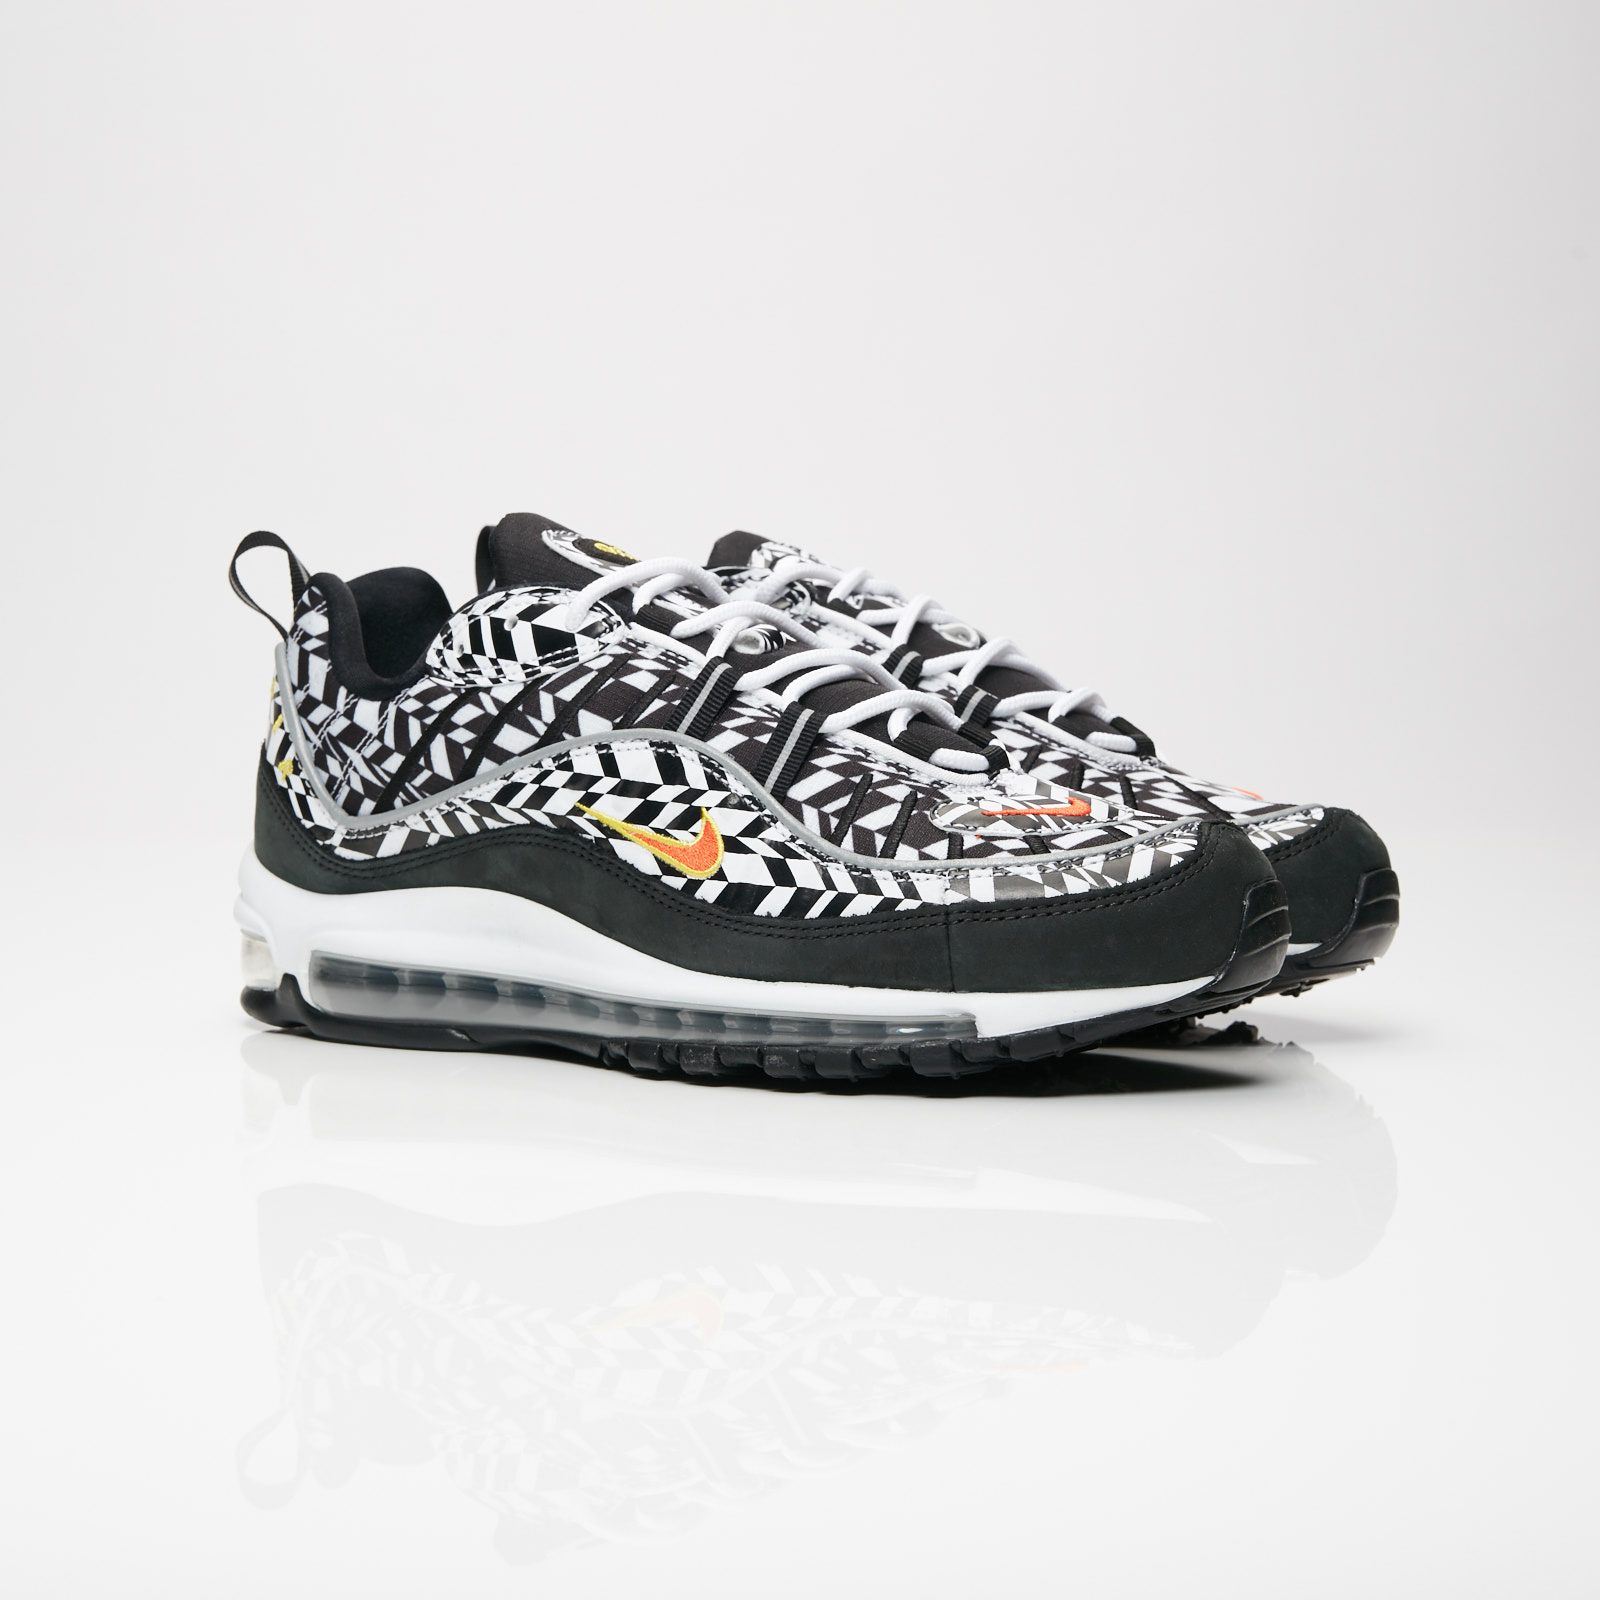 buy popular ce36c 62d15 ... yet. we will be updating stockists as soon as a confirmed date is  given. uk true dd mm yyyy 5704e db52b  new zealand nike sportswear air max  98 aop ...